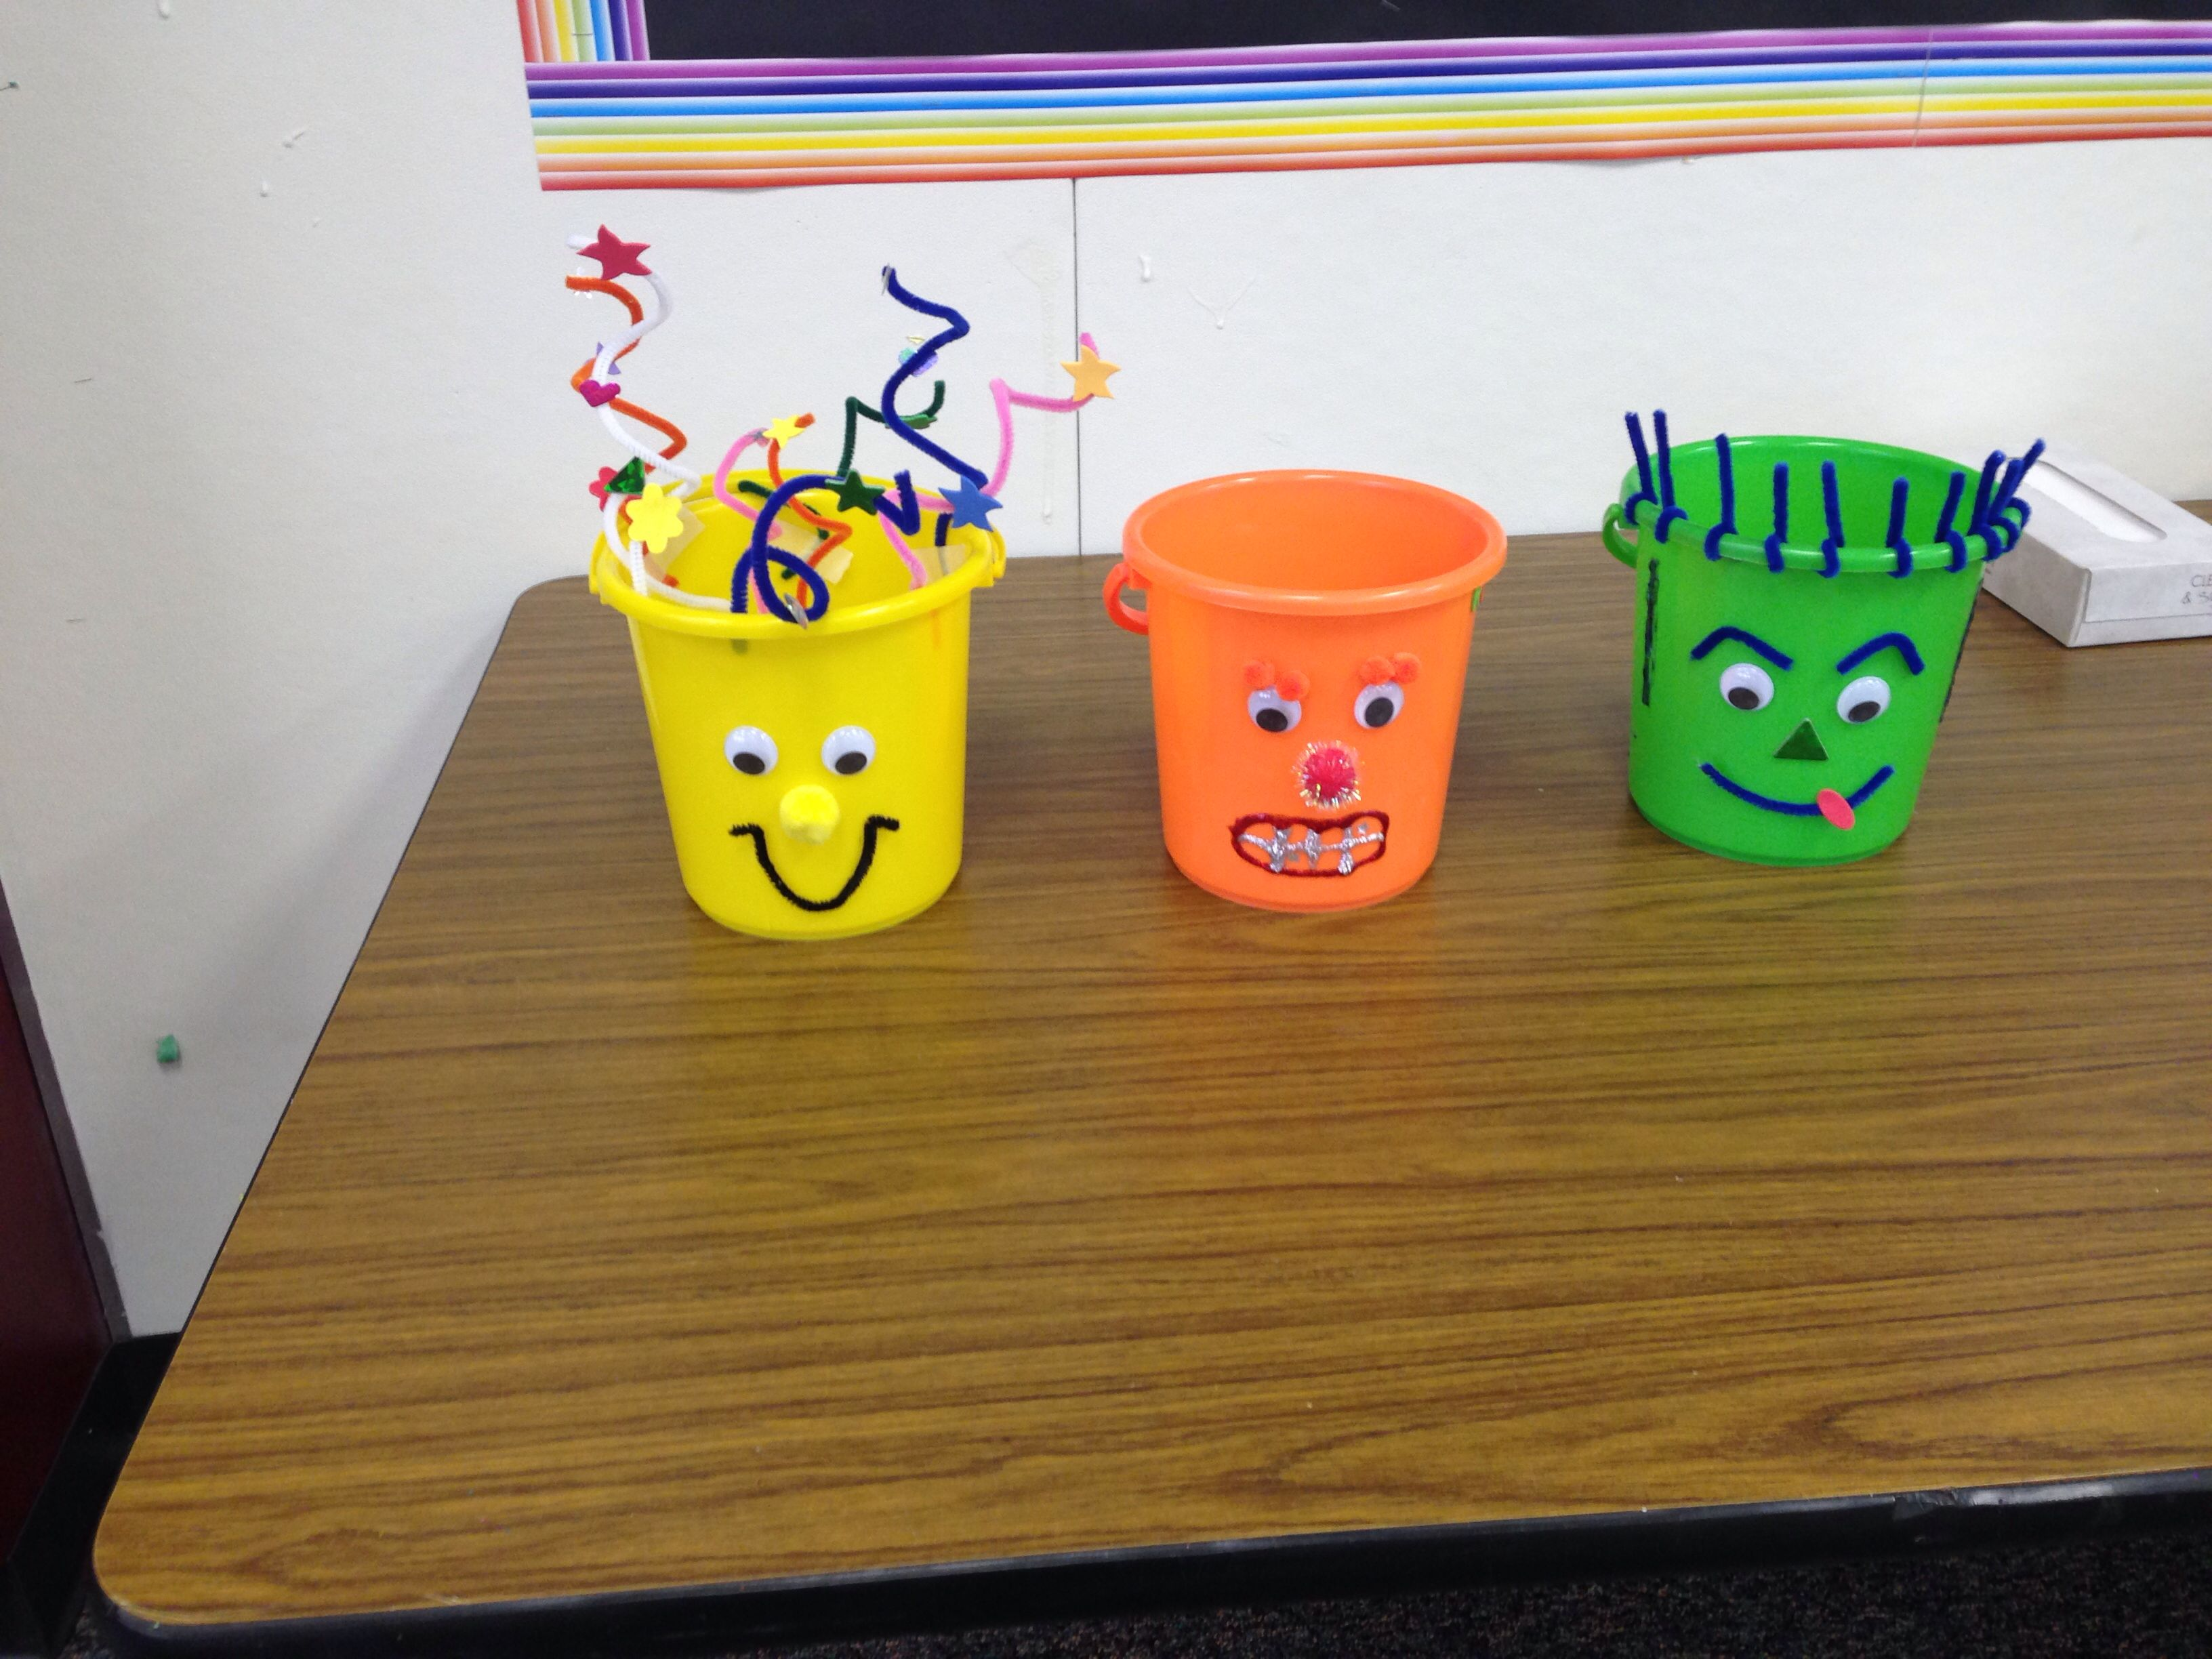 How full is your bucket: Decorate your own bucket and have kids fill others buckets with positive praise (bucket filling examples etc.~Zayra, Linda and Robert